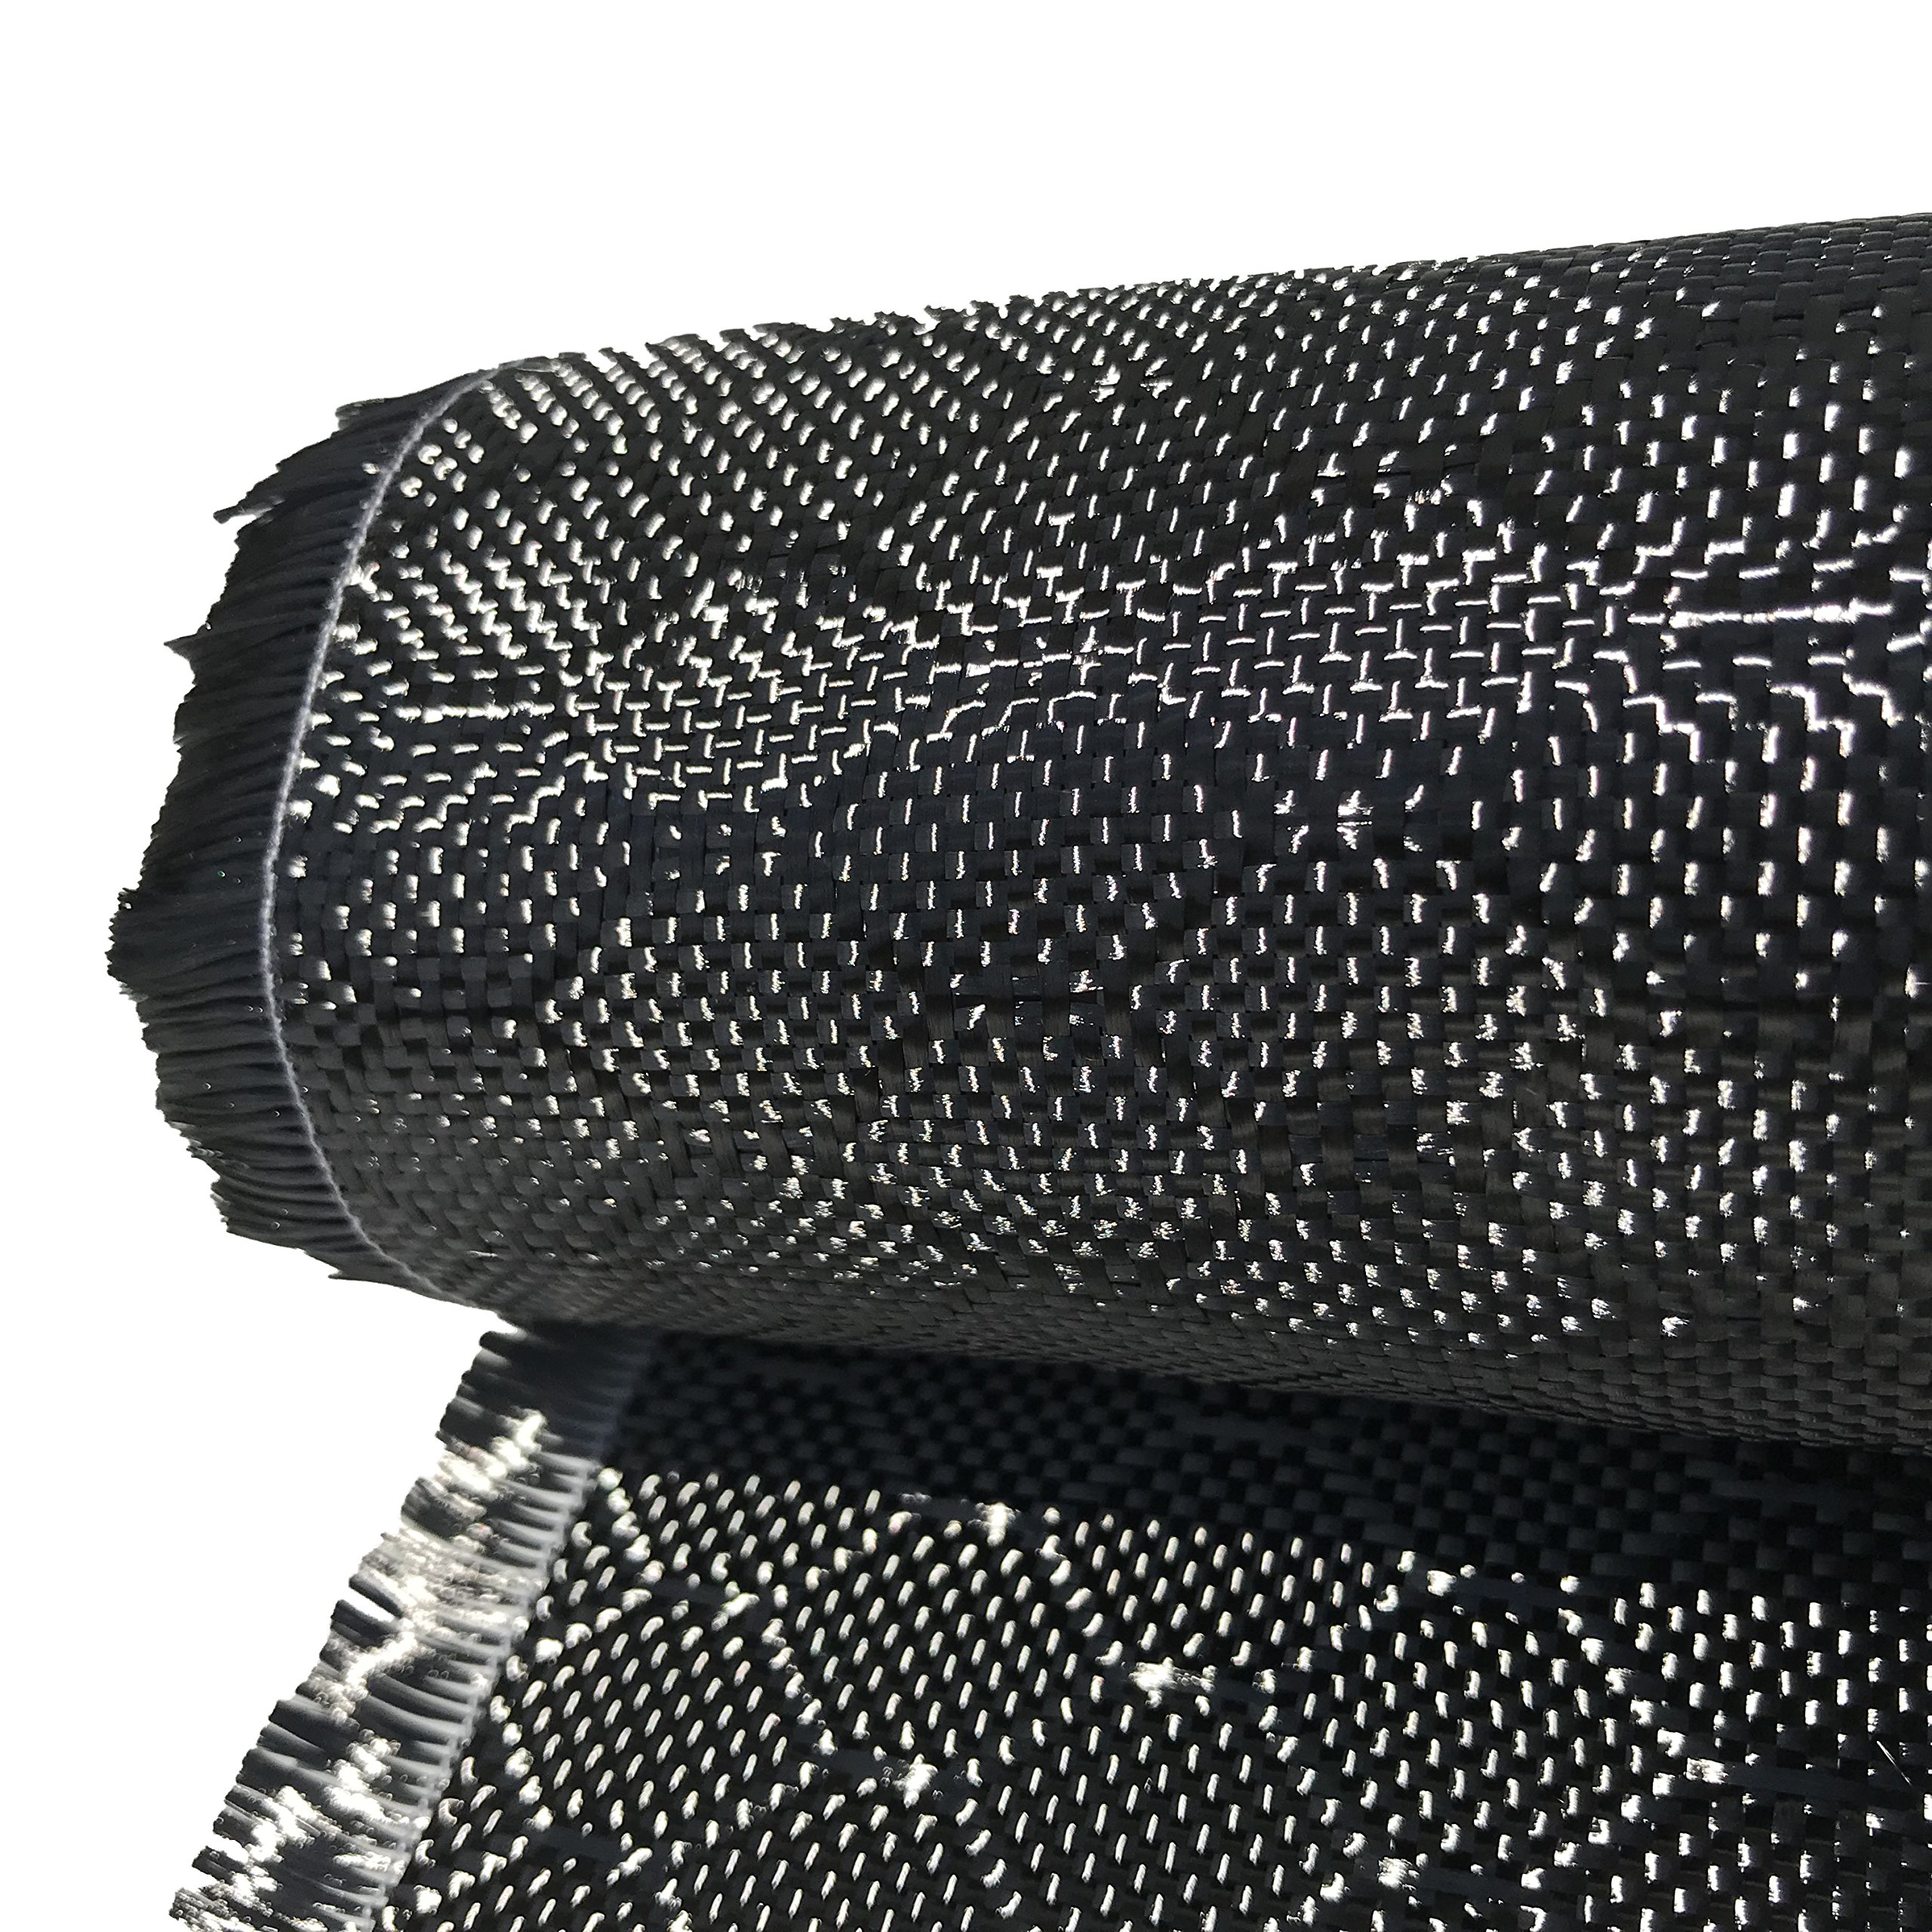 12 in x 5 FT - WASP - Carbon Fiber Fabric - Wasp Weave-3K - 220g-Black by CARBON KEVLAR SUPPLY (Image #5)